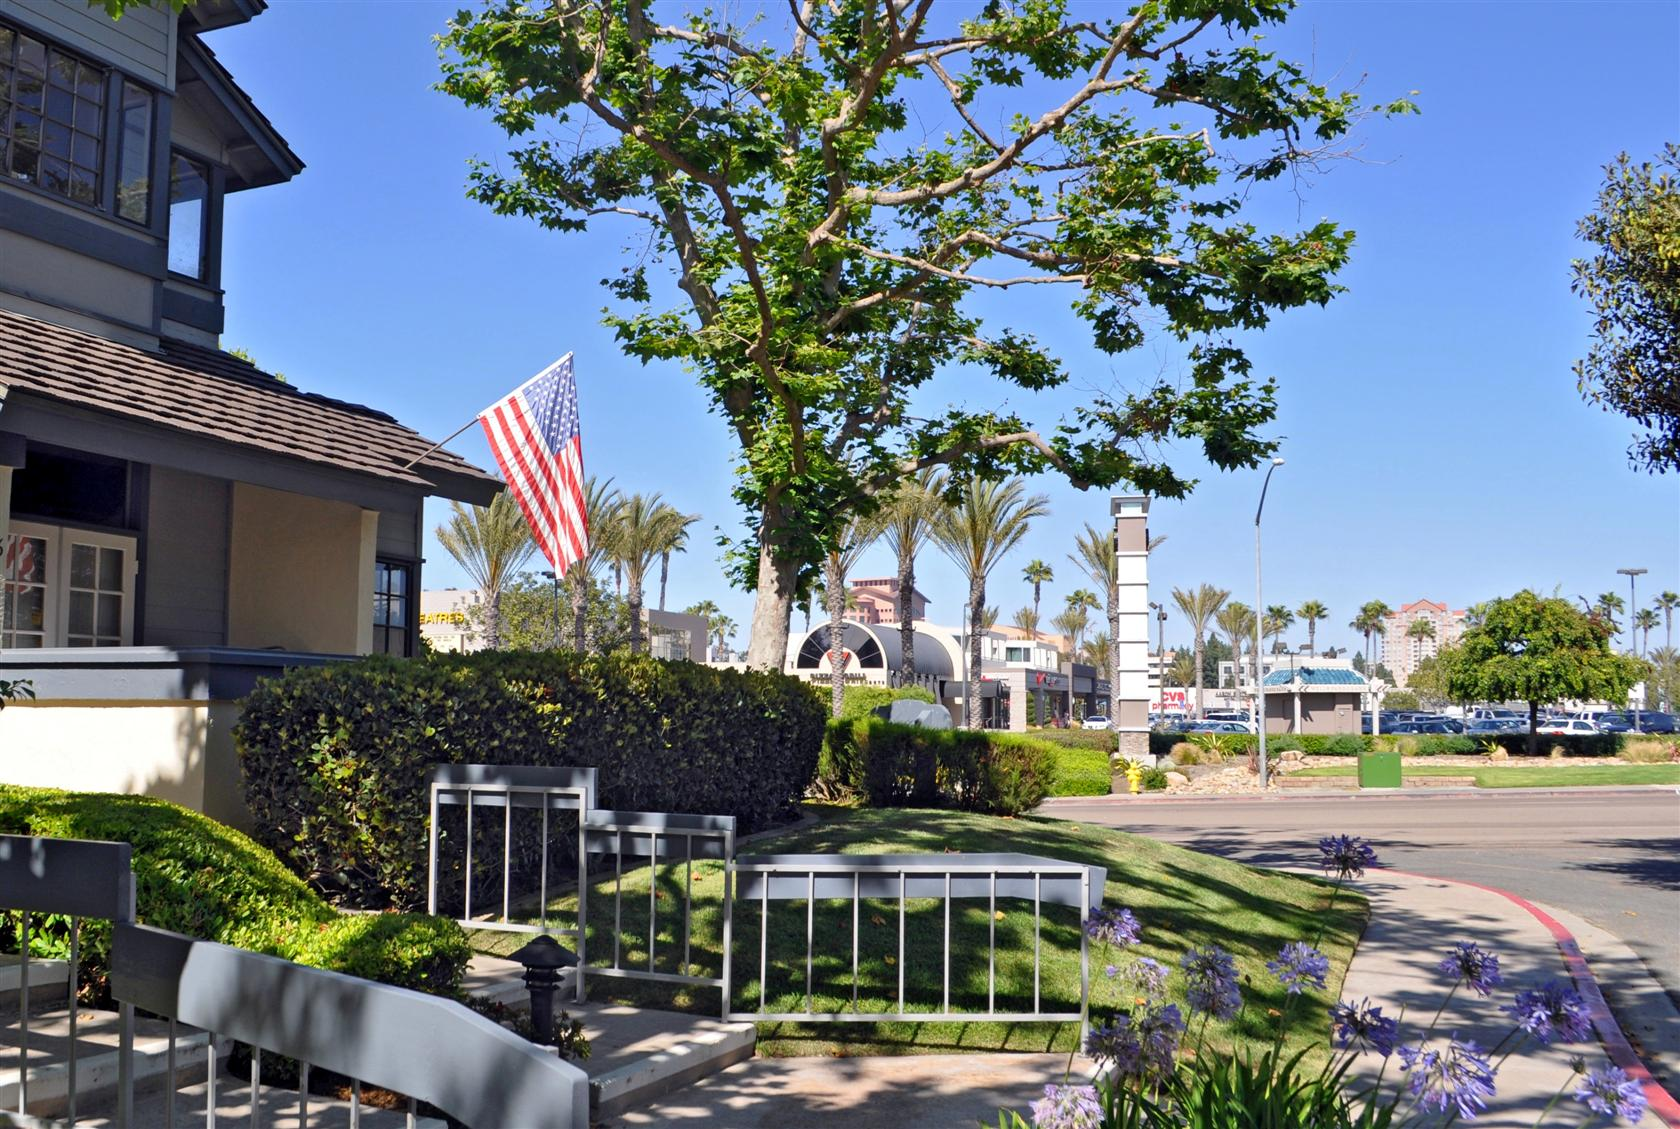 La Jolla Village Square is an exciting assortment of retail, dining, and entertainment choices. There's something for everyone, including casual dining, fashions for the entire family, grocery and specialty foods, home accessories and a variety of specialty stores.